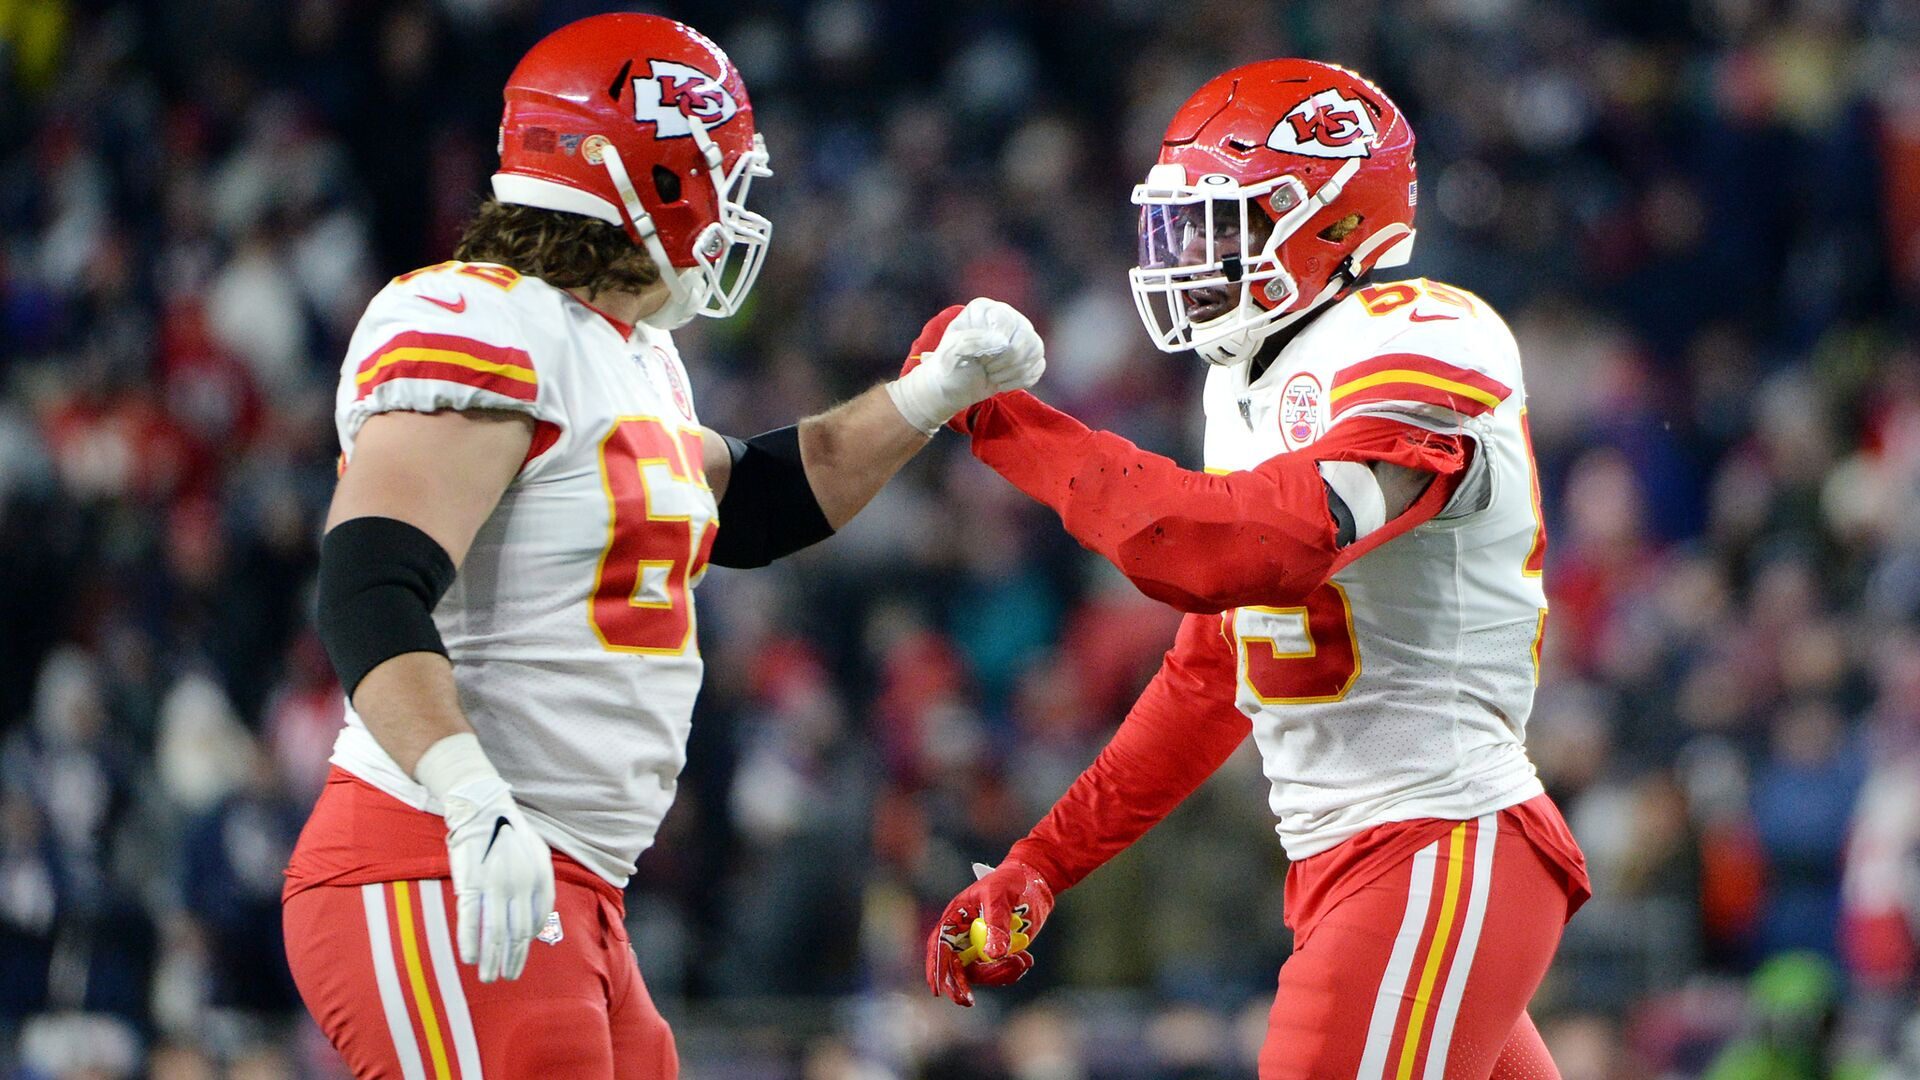 AFC West Roundup Week 14: Kansas City Chiefs clinch the division